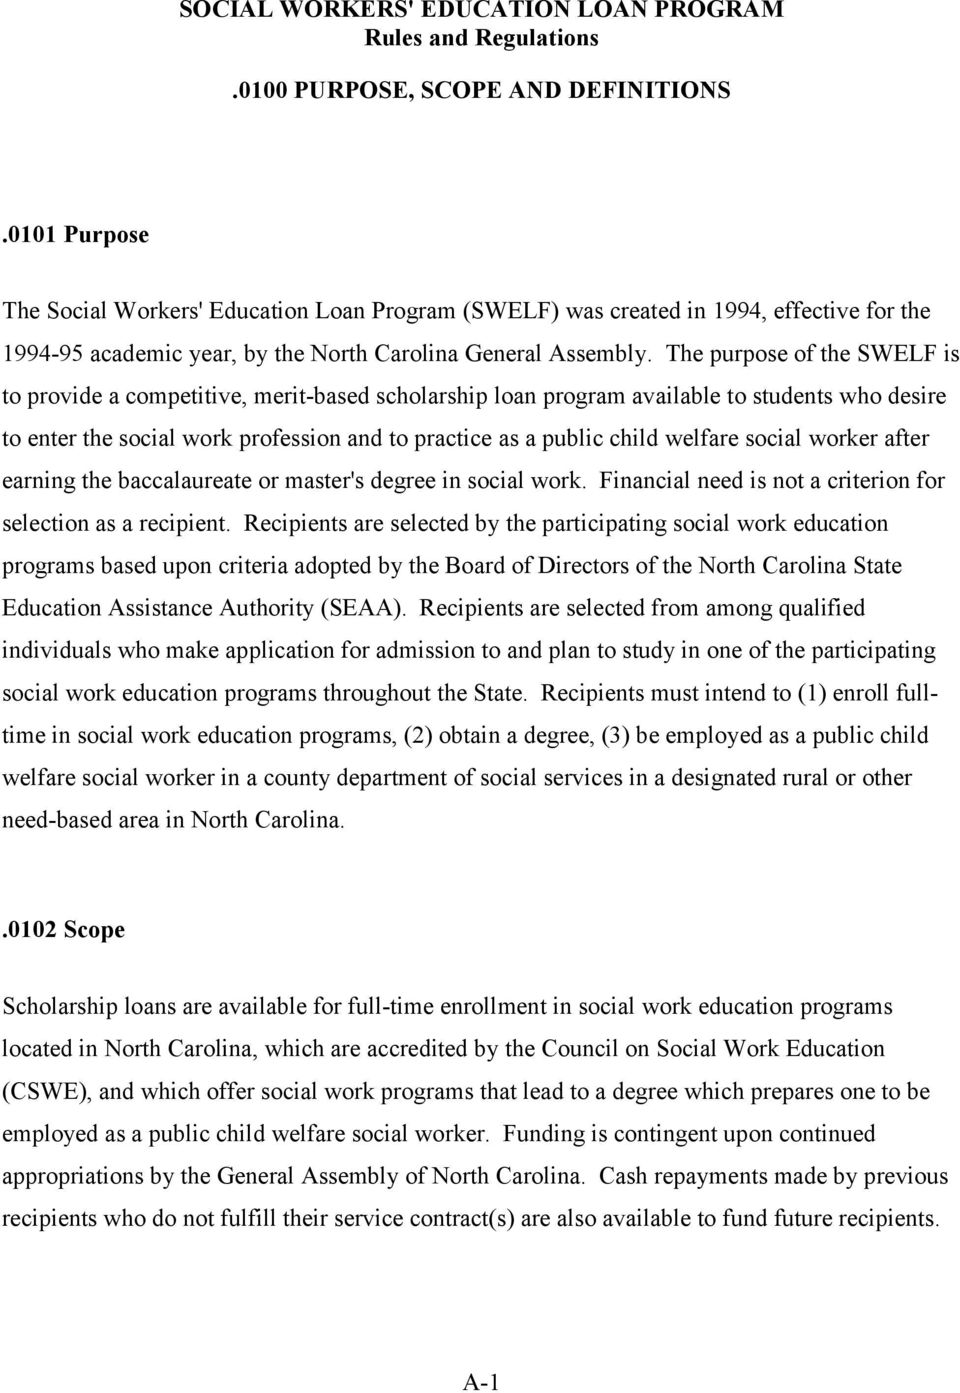 The purpose of the SWELF is to provide a competitive, merit-based scholarship loan program available to students who desire to enter the social work profession and to practice as a public child